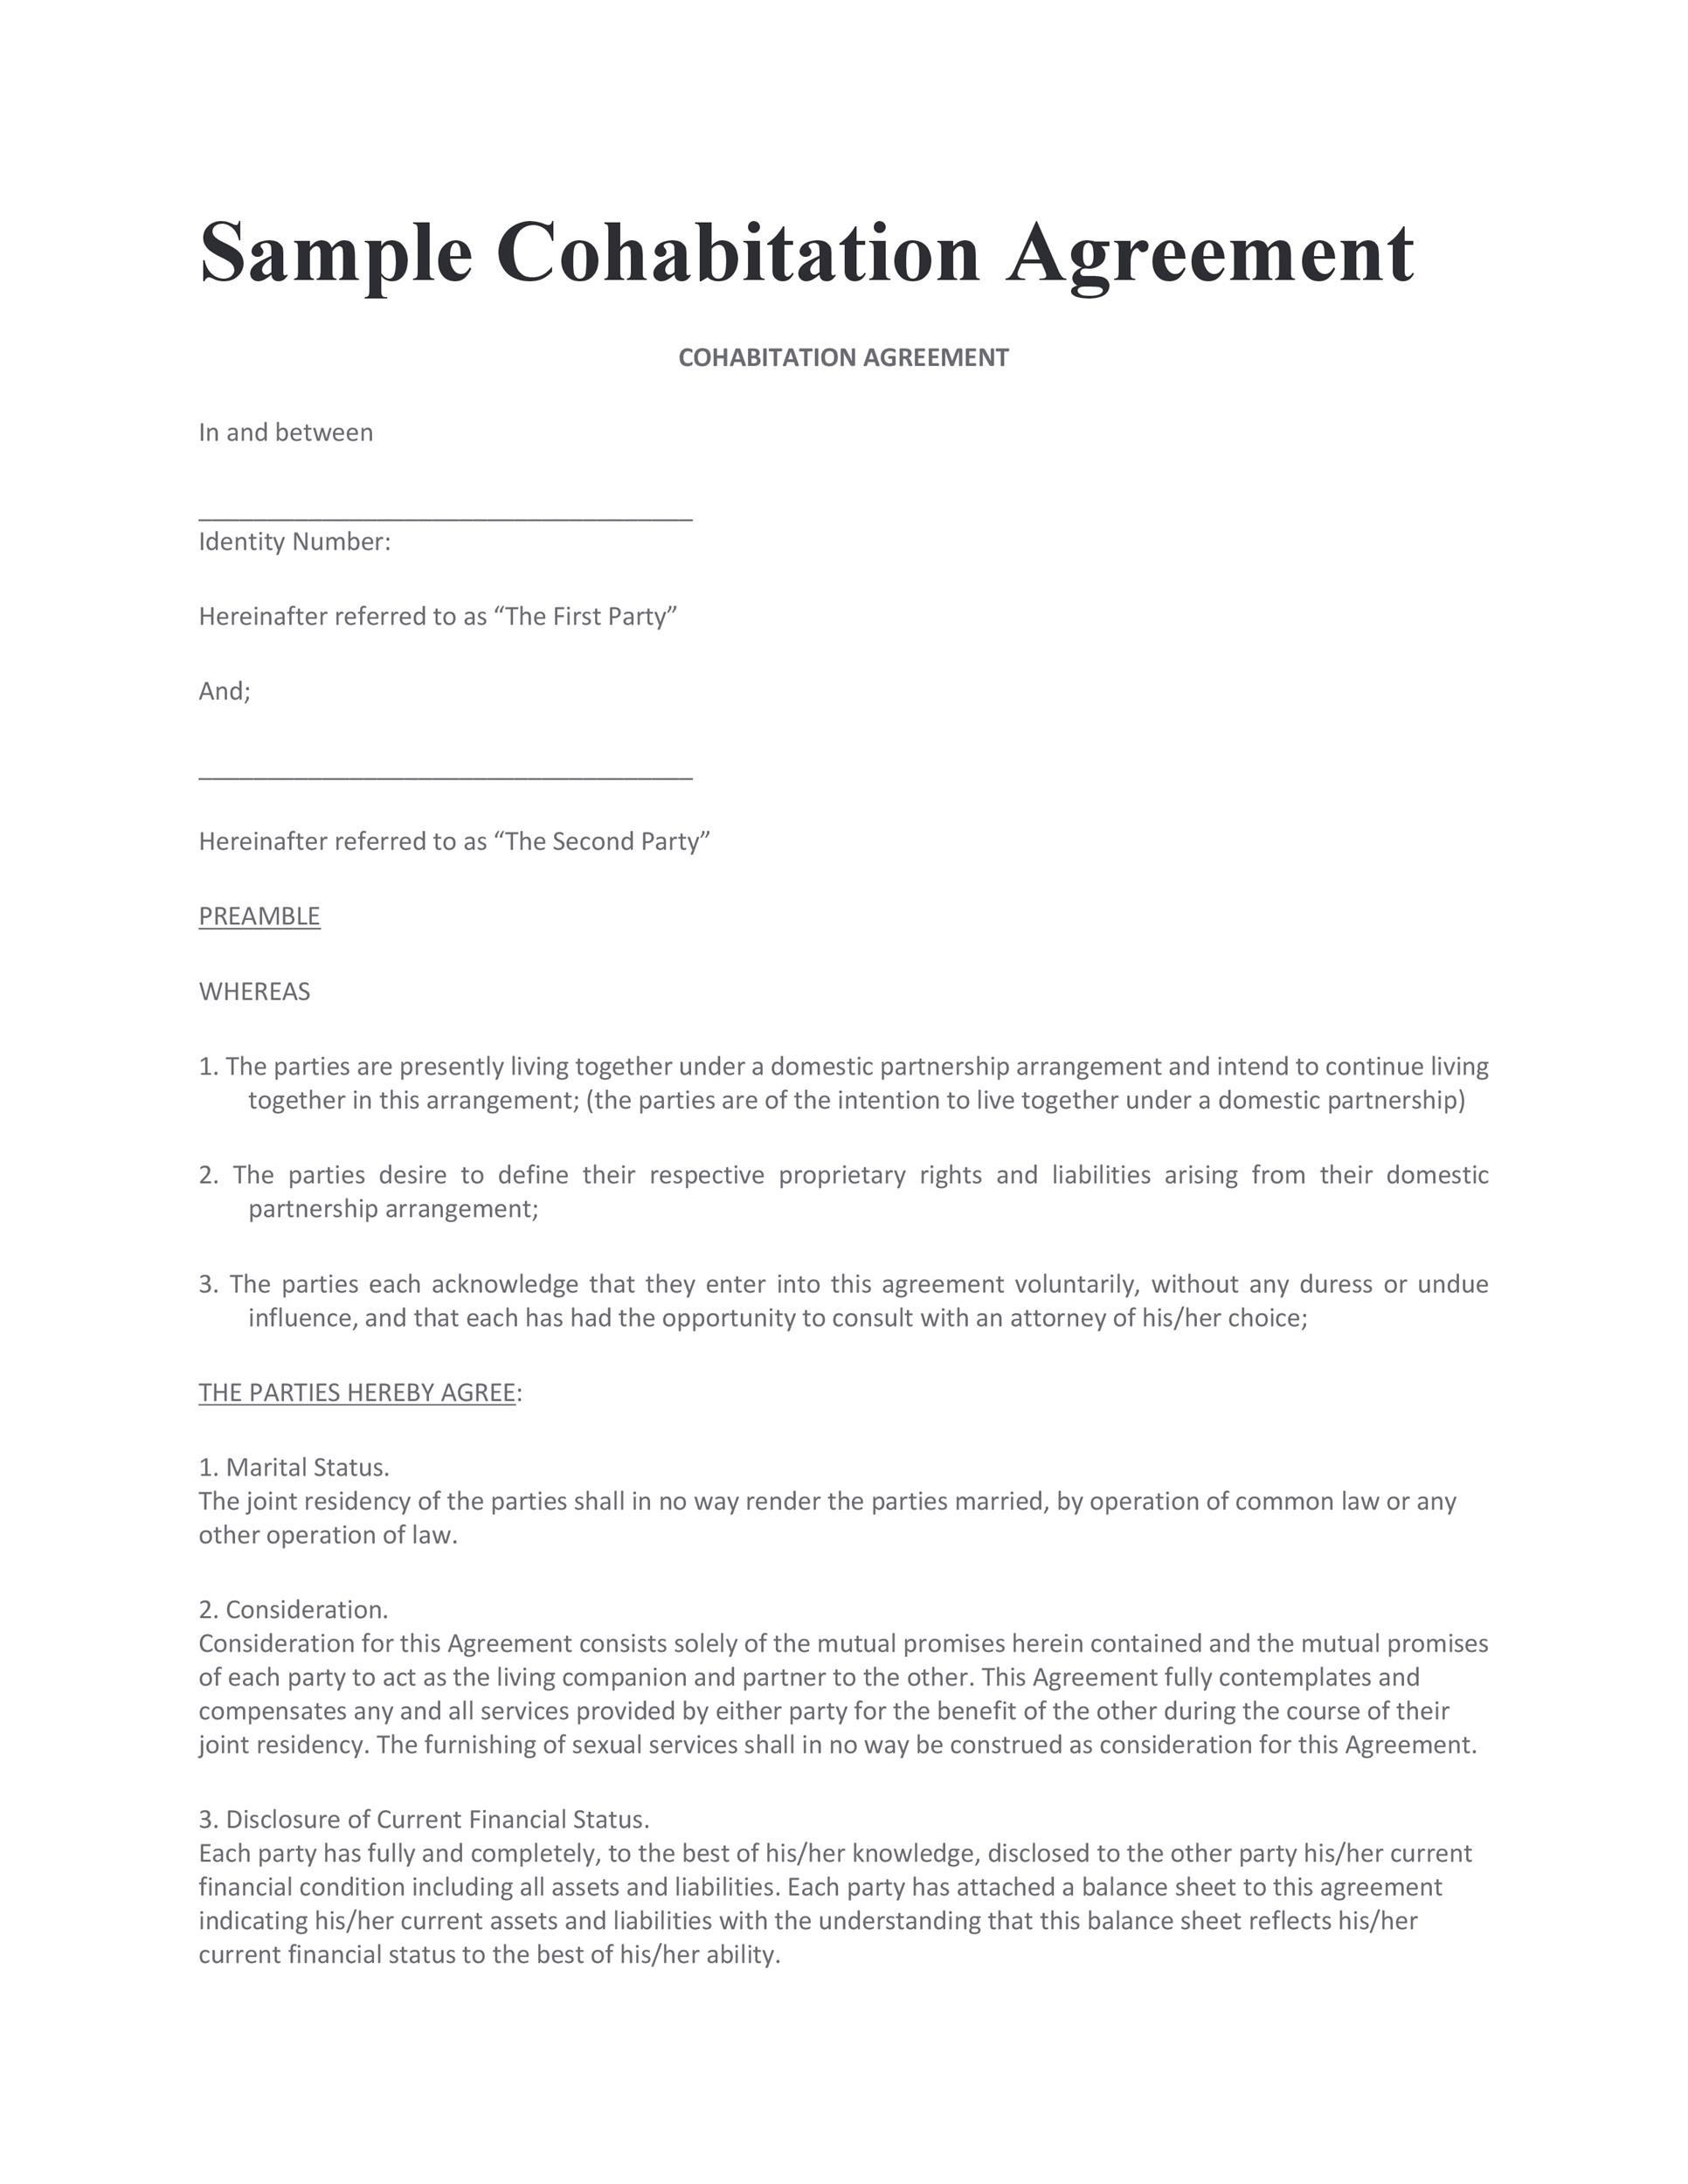 Free cohabitation agreement template 20